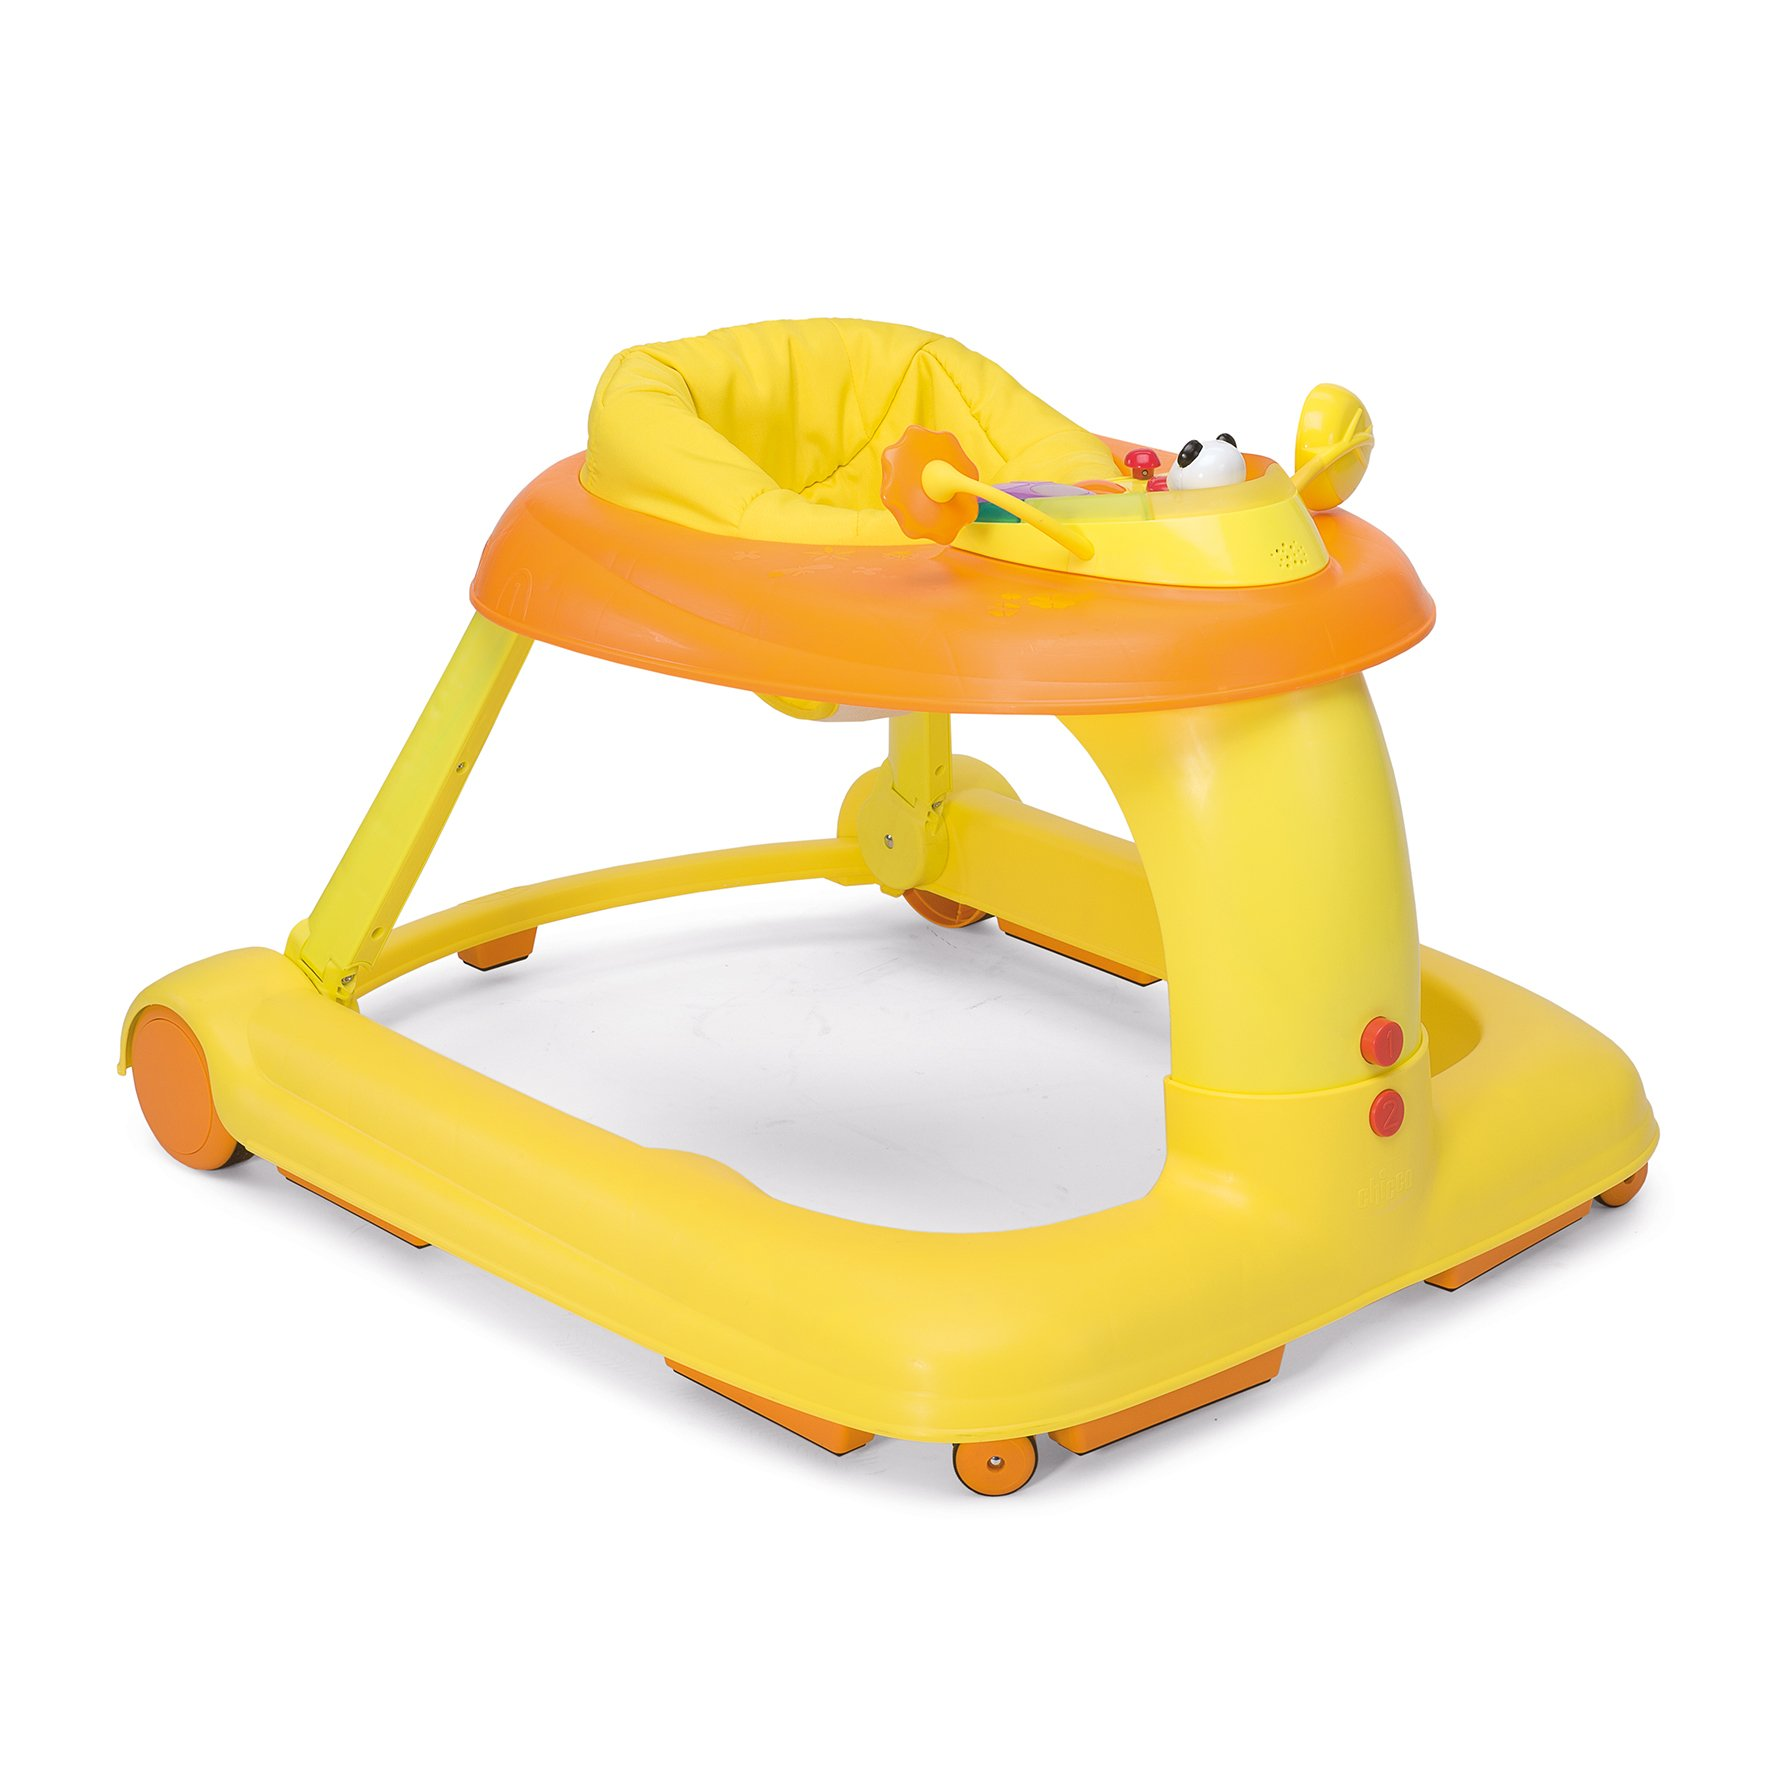 Chicco Baby Walker 1 2 3 2018 Orange Buy at kidsroom